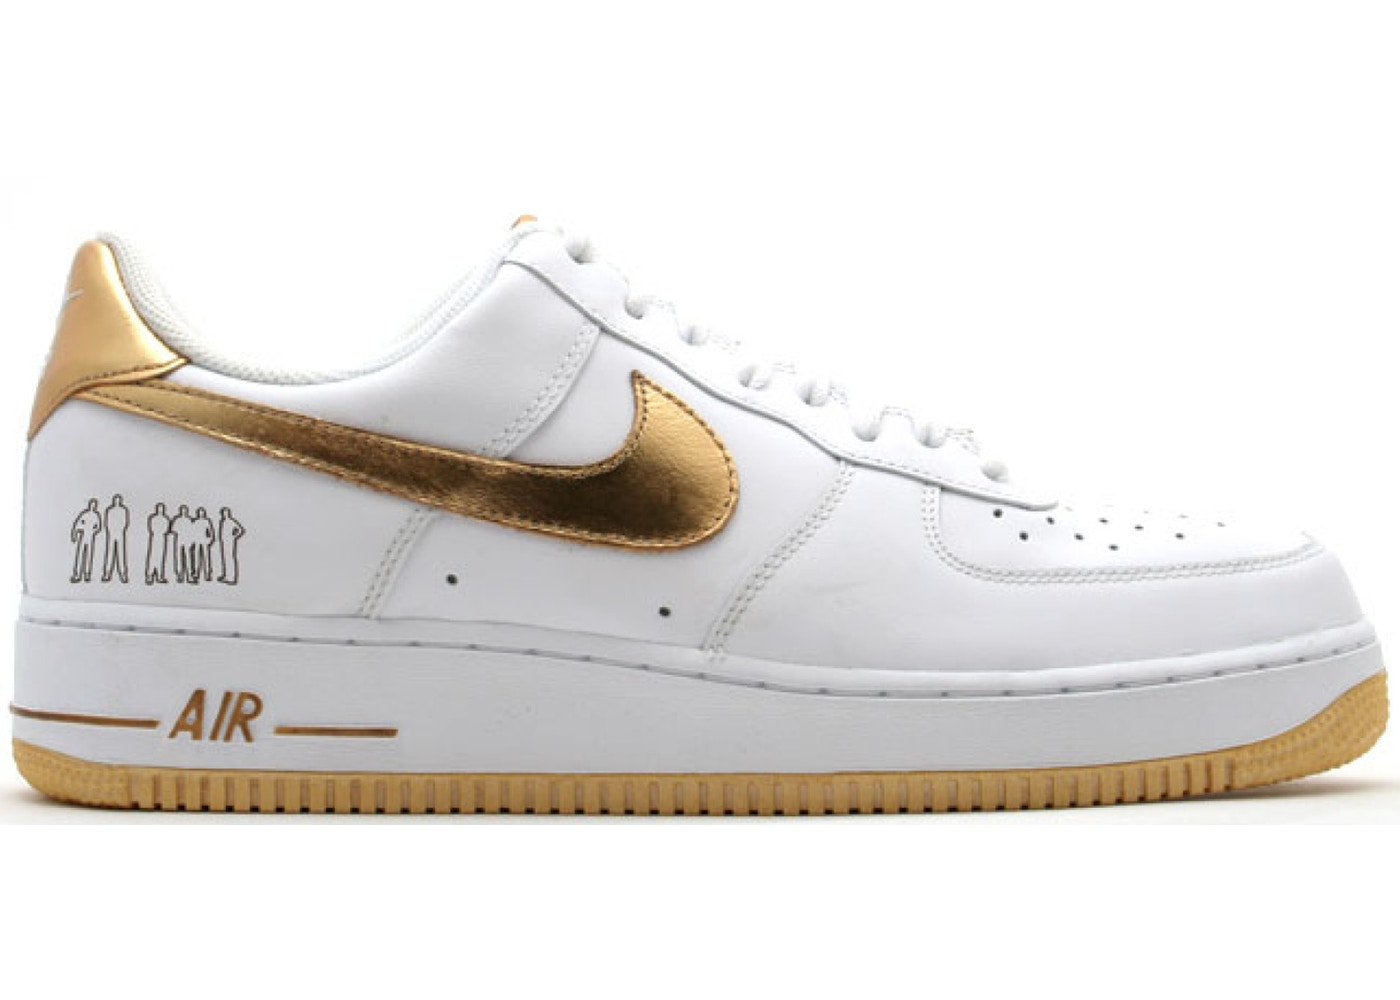 Air Force 1 Low Players White Metallic Gold - 315092-171